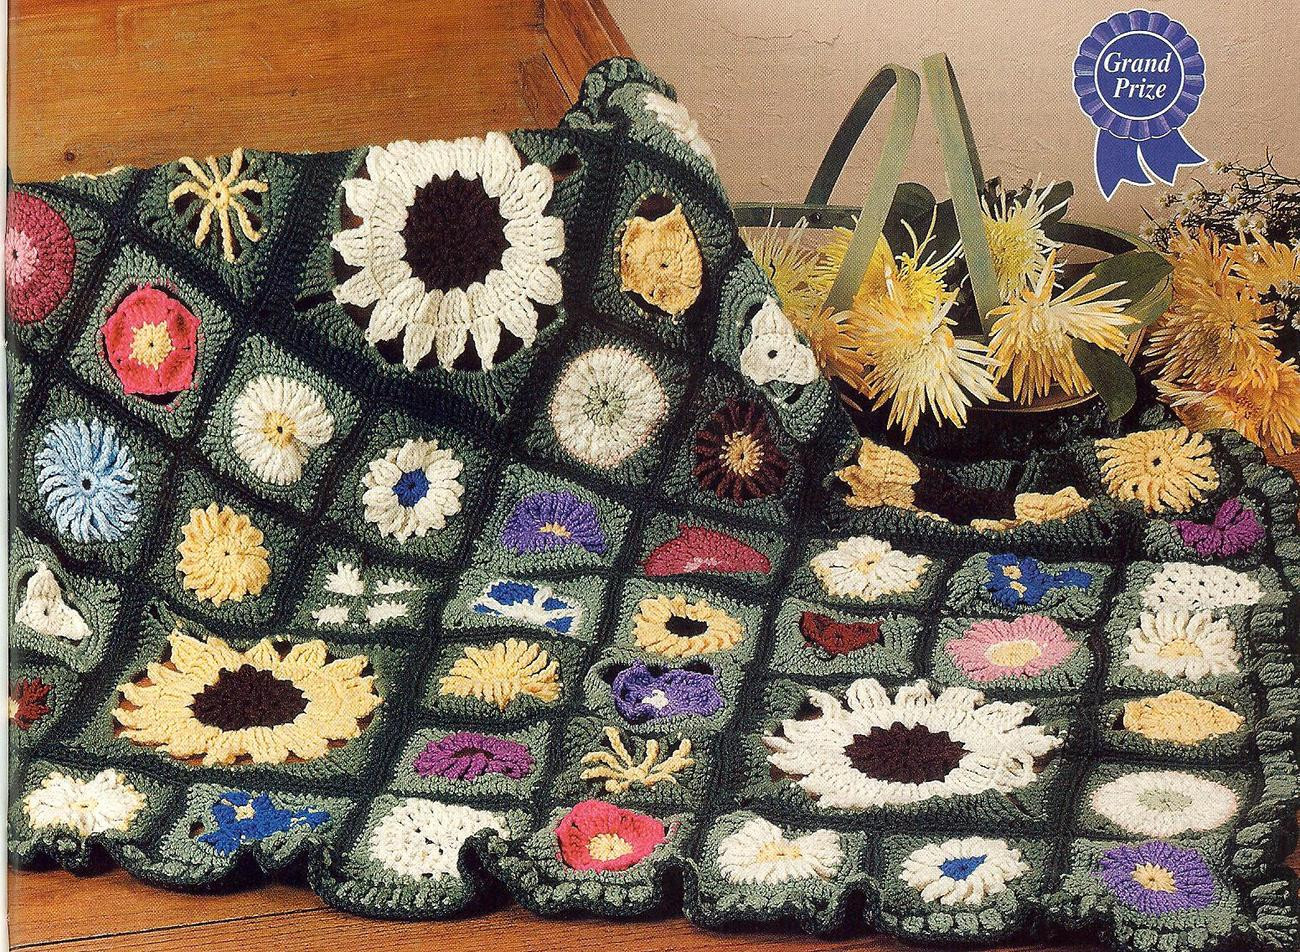 Easy Crochet Afghan Patterns Awesome Award Winning Field Of Flowers Crochet Afghan Pattern Of Wonderful 45 Pics Easy Crochet Afghan Patterns